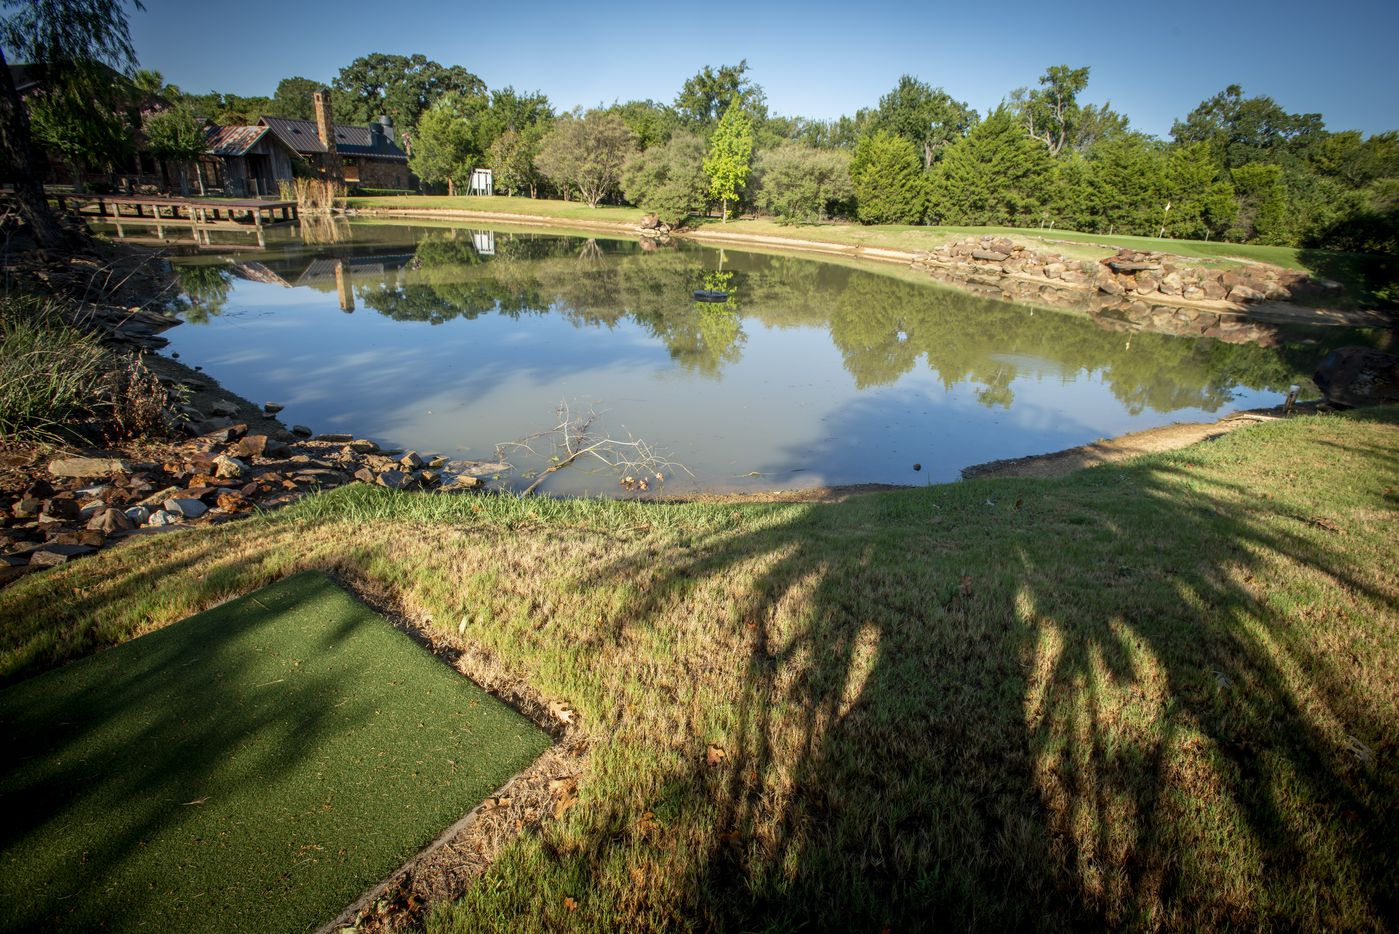 Golf tee, water hazard and green at 5101 Kensington Ct., in Flower Mound, Texas on August 19, 2020. (Robert W. Hart/Special Contributor)